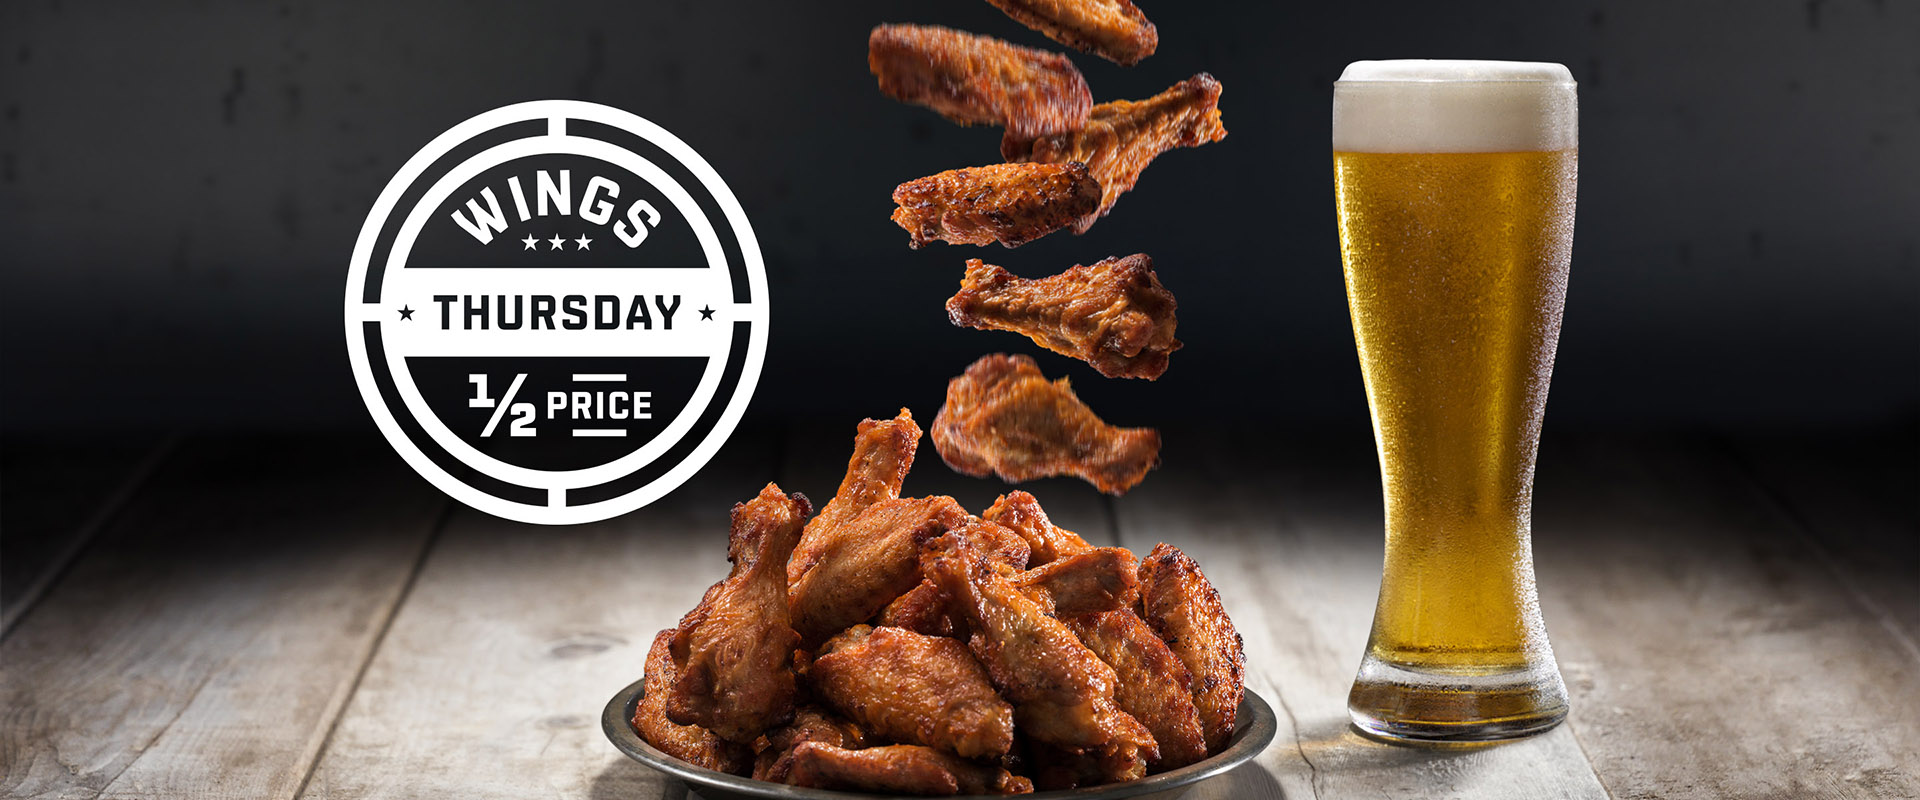 Half price wings Thursdays